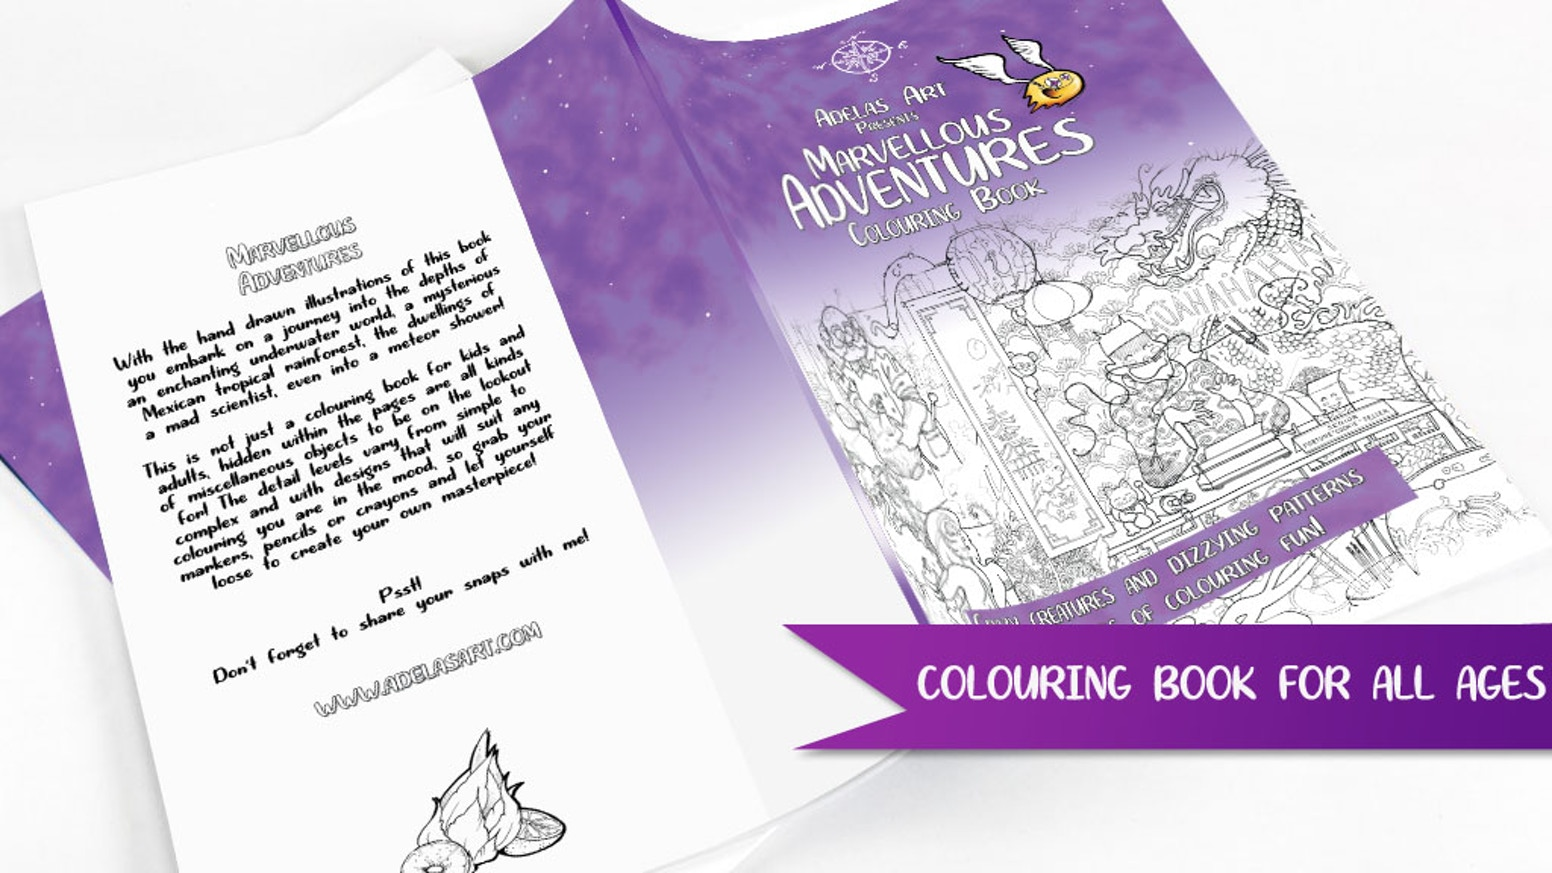 This book contains illustrations with a quirky, magical feel for you to colour and enjoy. Colour in something unusual and different!